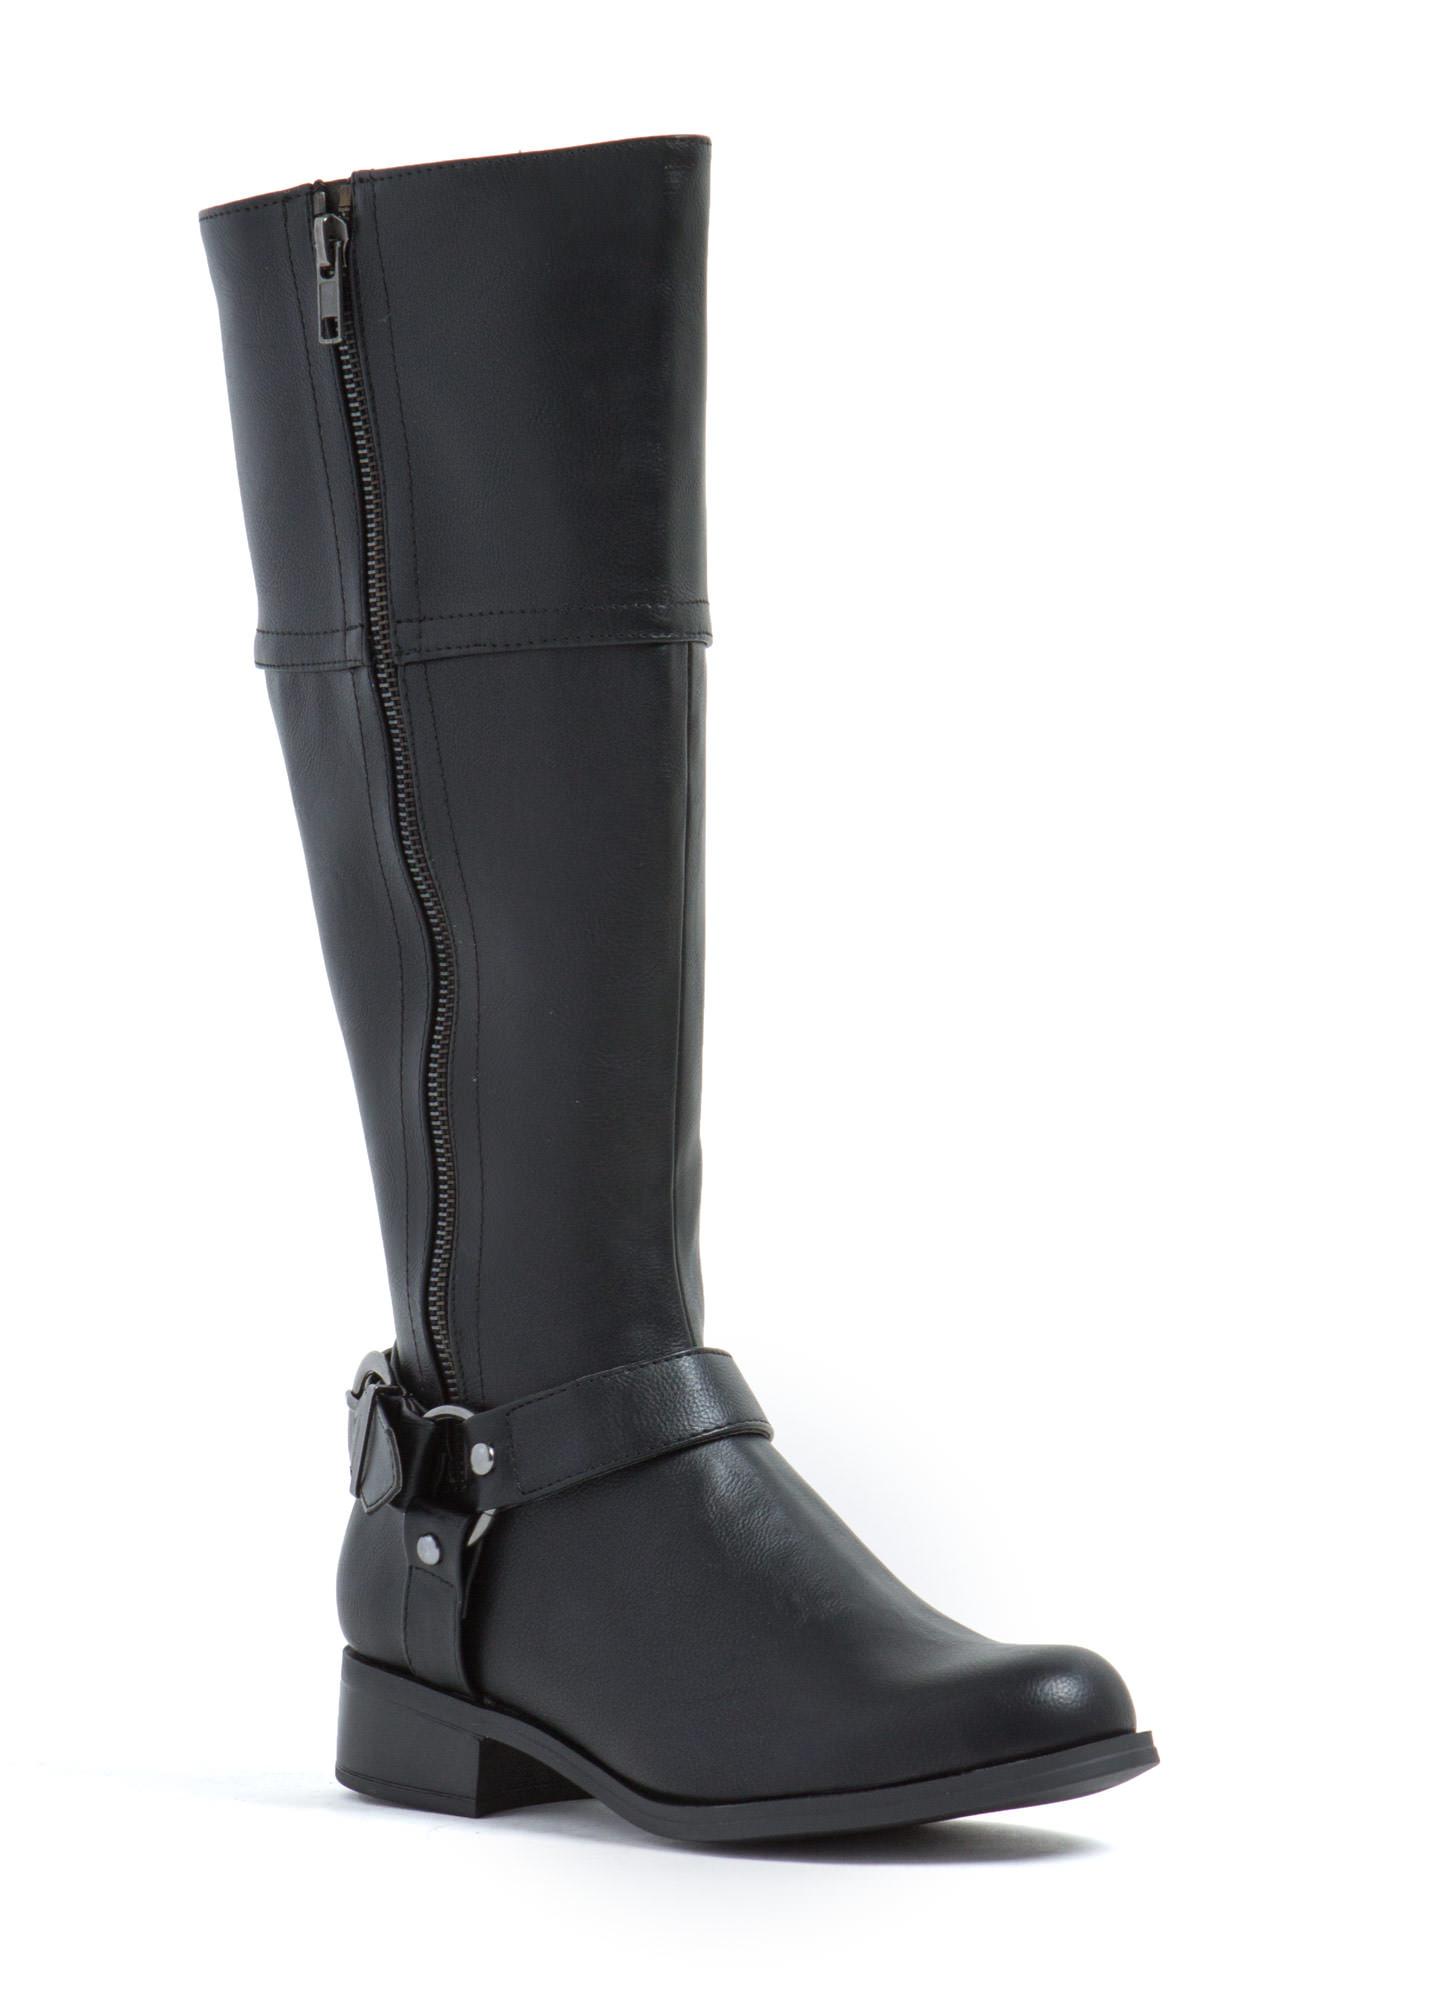 Zip It Good Riding Boots BLACK